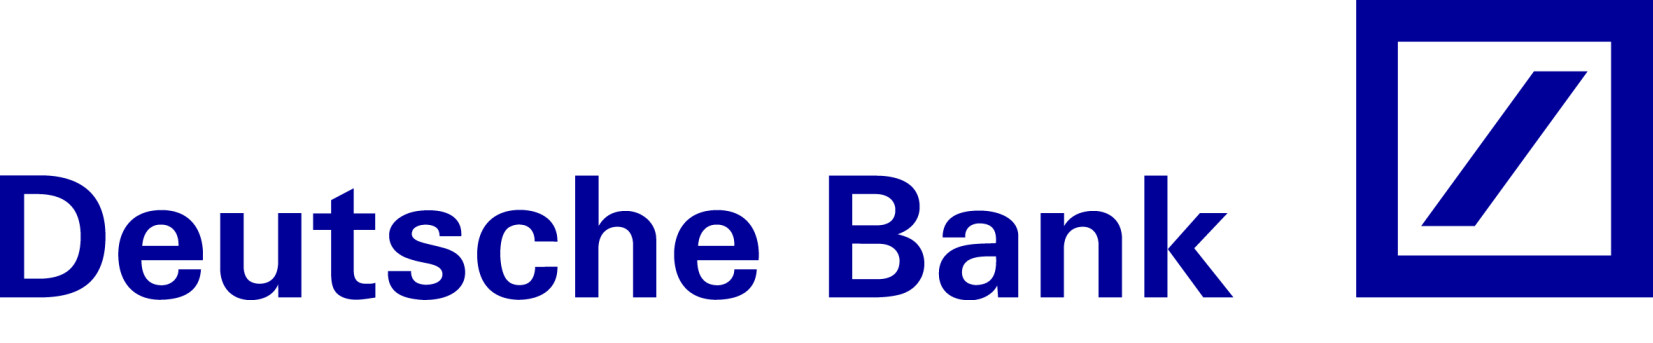 https://chrisbwarner.com/wp-content/uploads/2012/02/deutsche_bank_logo_expo2010.png